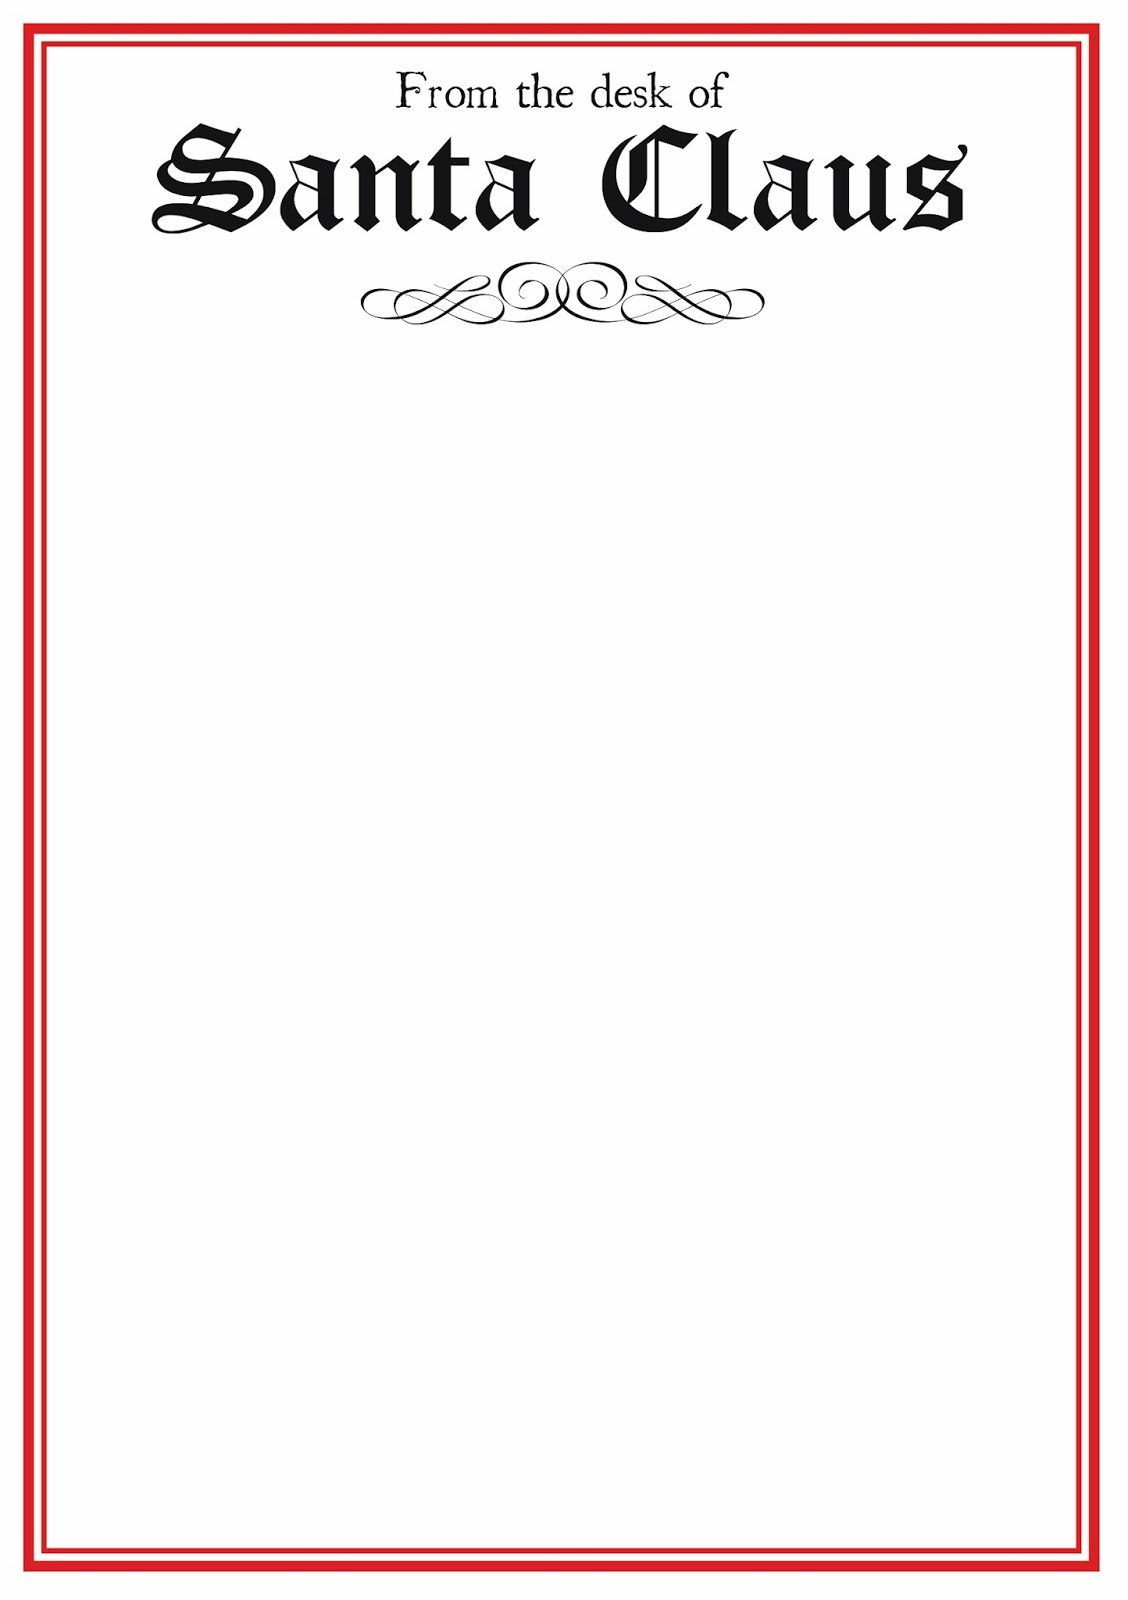 Free Printable Letter From Santa Template Word Download For Blank Letter From Santa Template